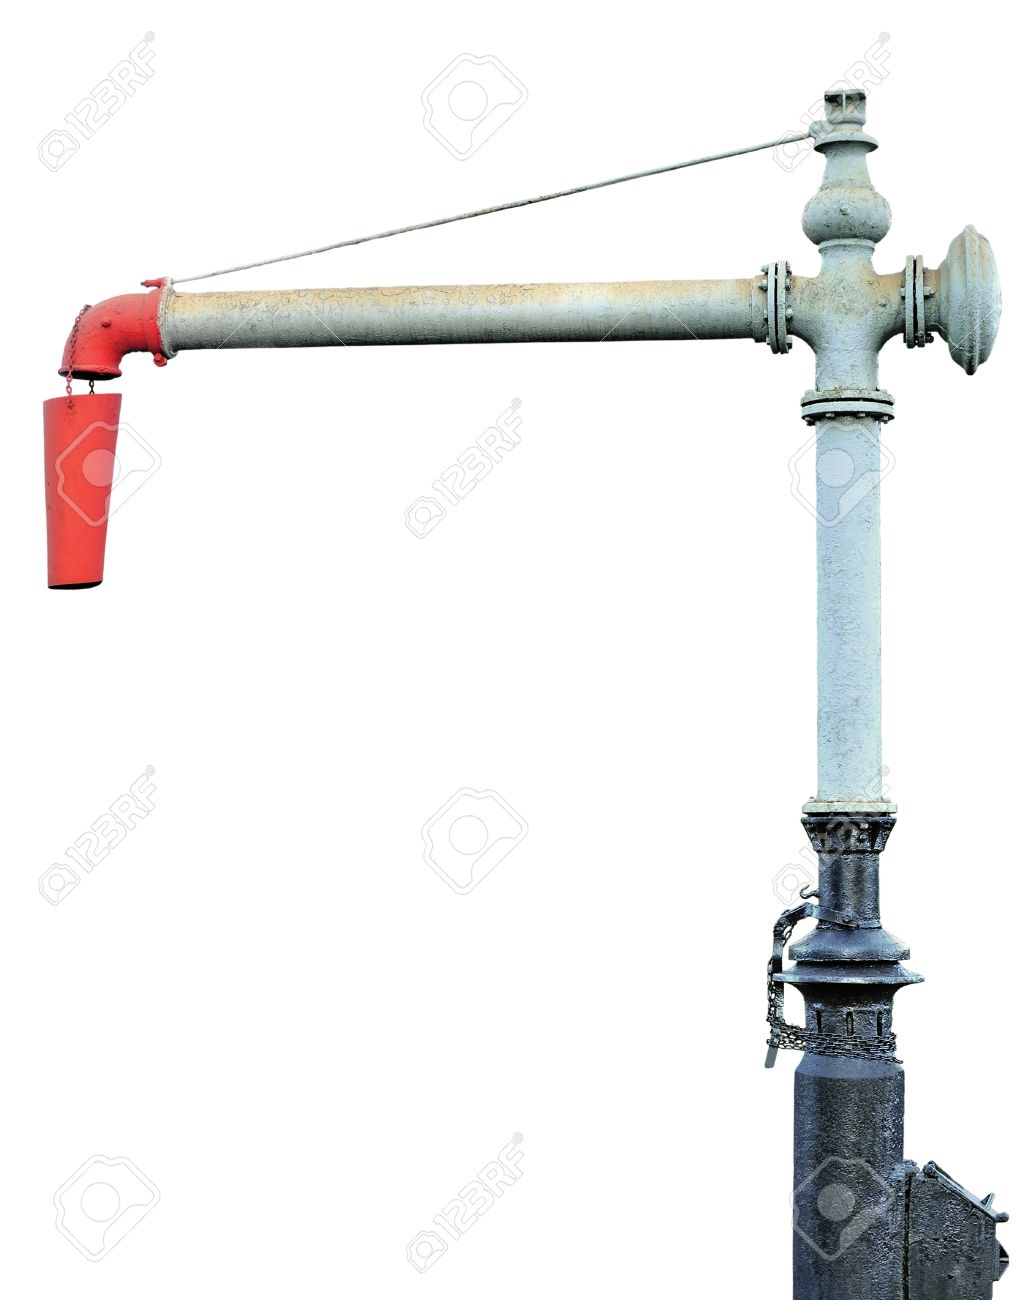 Steam Train Locomotive Engine Water Crane Column Standpipe Spout, Railroad Station Railway Tracks Watering Supply Tanking Service, Historical Filler Stop Device Utility, Old Aged Weathered Isolated Grunge Vintage Abandoned, Black, Grey, Gray, Red Cast Iro - 16047735